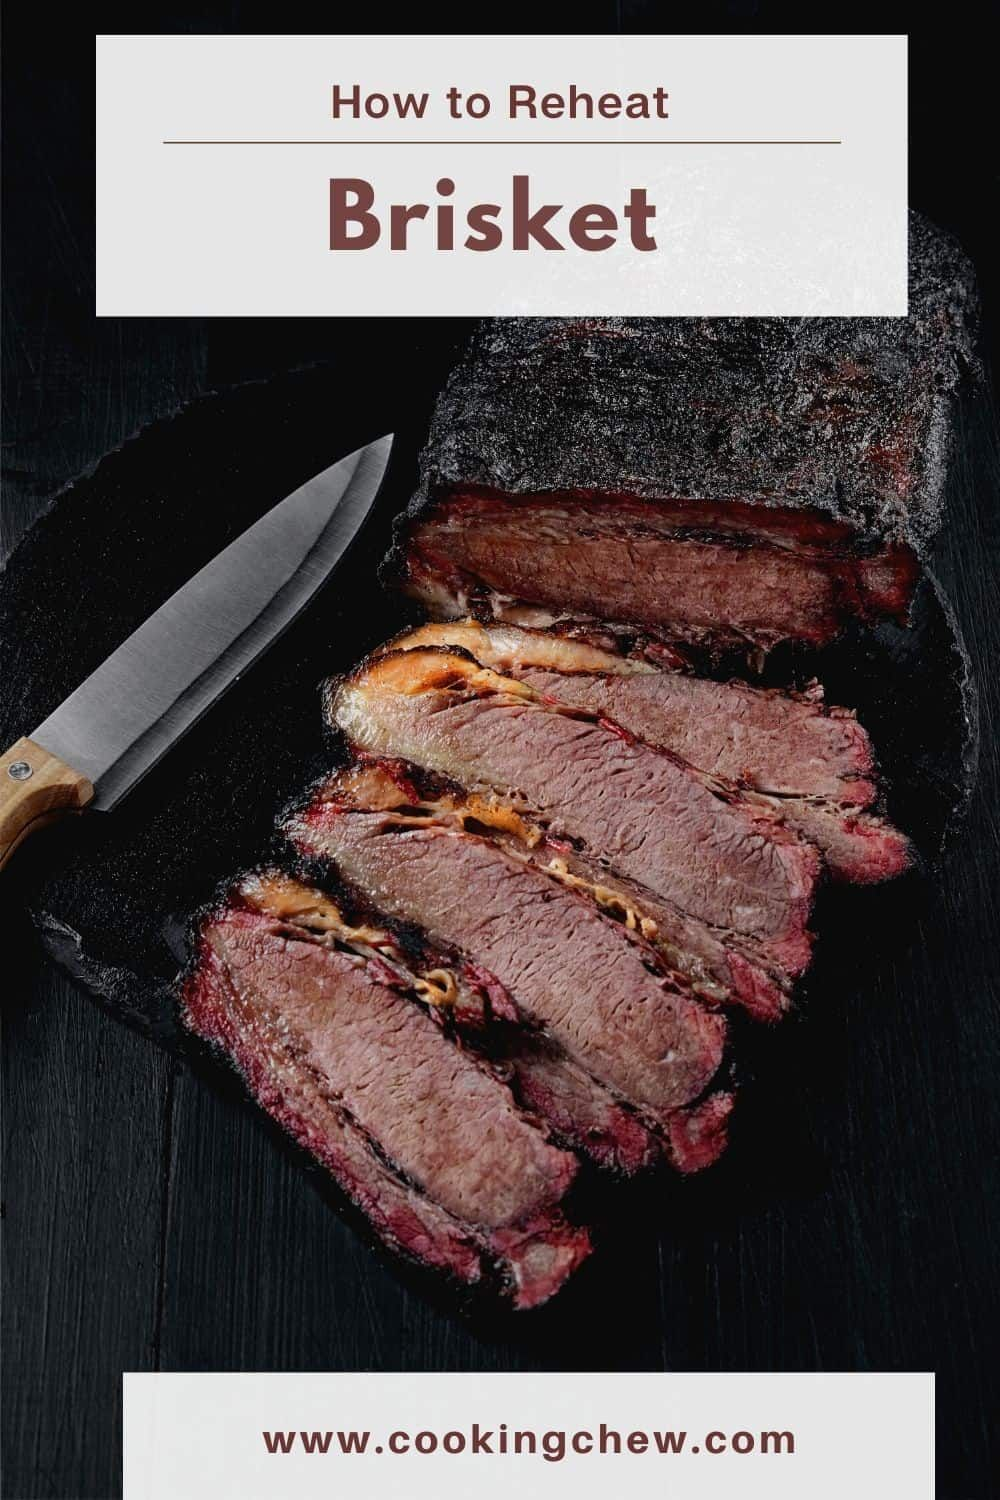 How To Reheat Brisket In 4 Easy Ways Without Drying It Out Recipe Brisket Oven Brisket Smoked Brisket